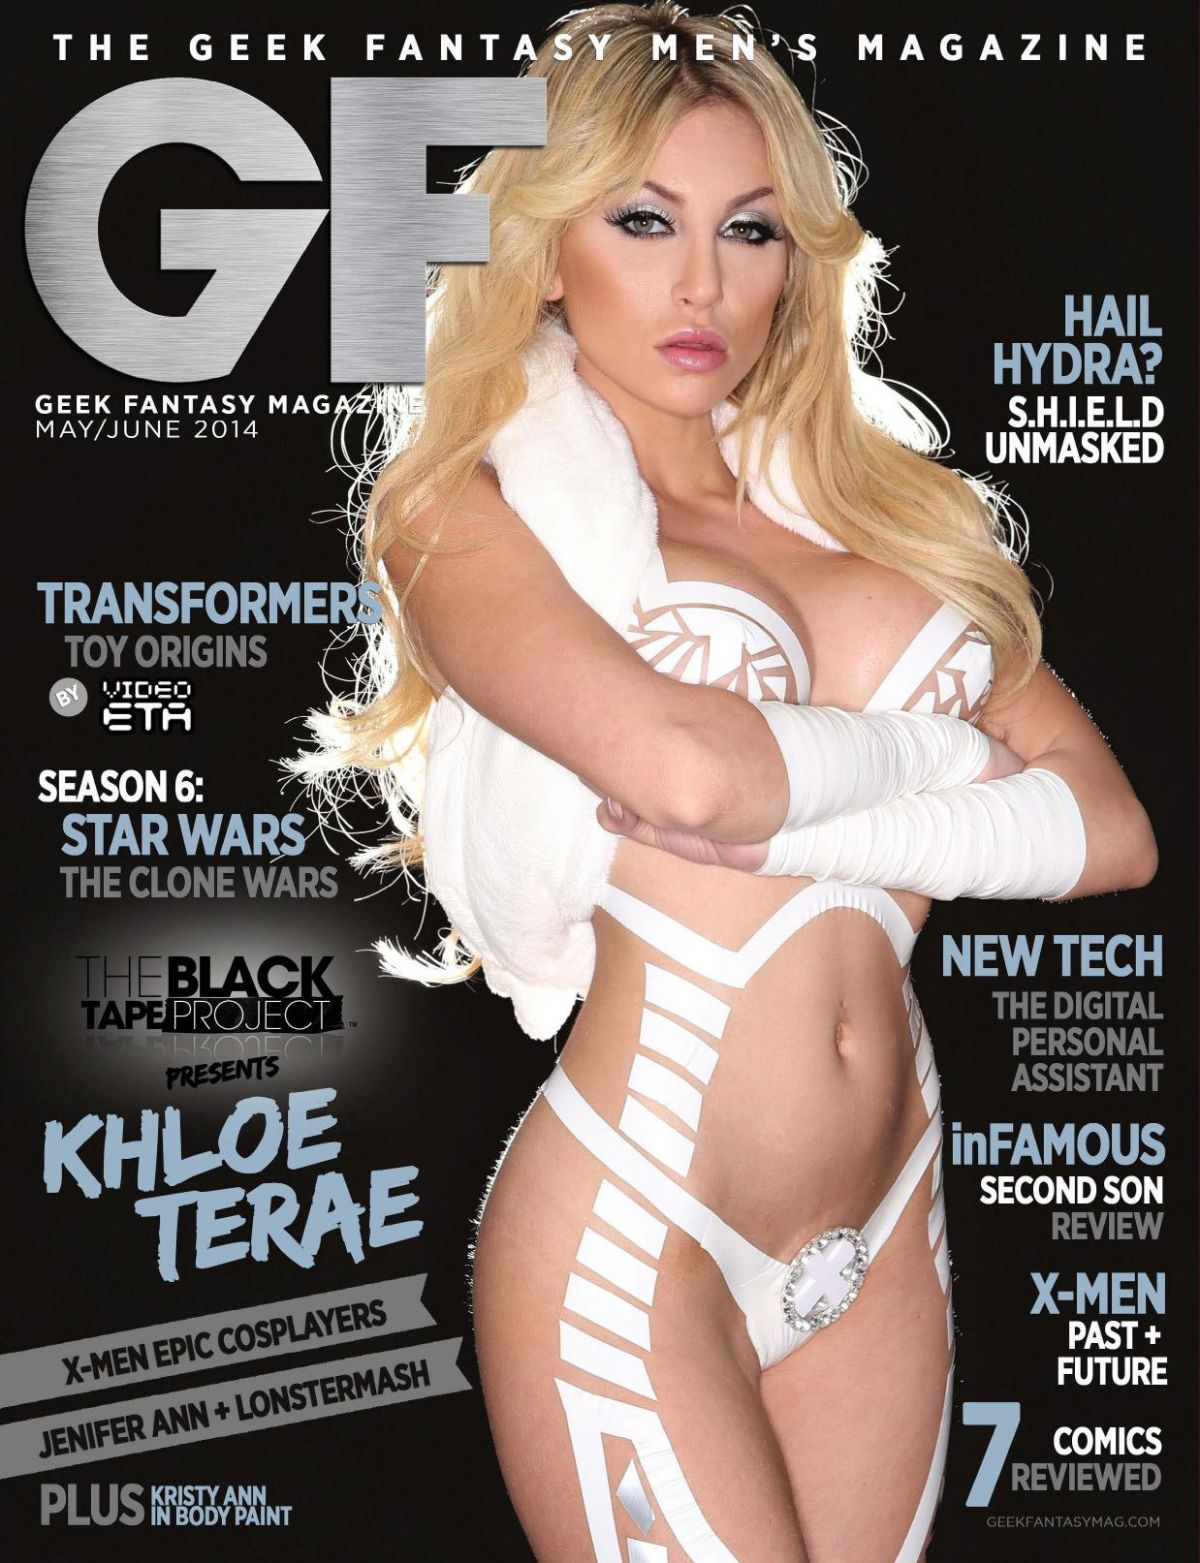 khloe-terae-in-geek-fantasy-magazine-may-june-2014-issue_2.jpg - 267.95 KB